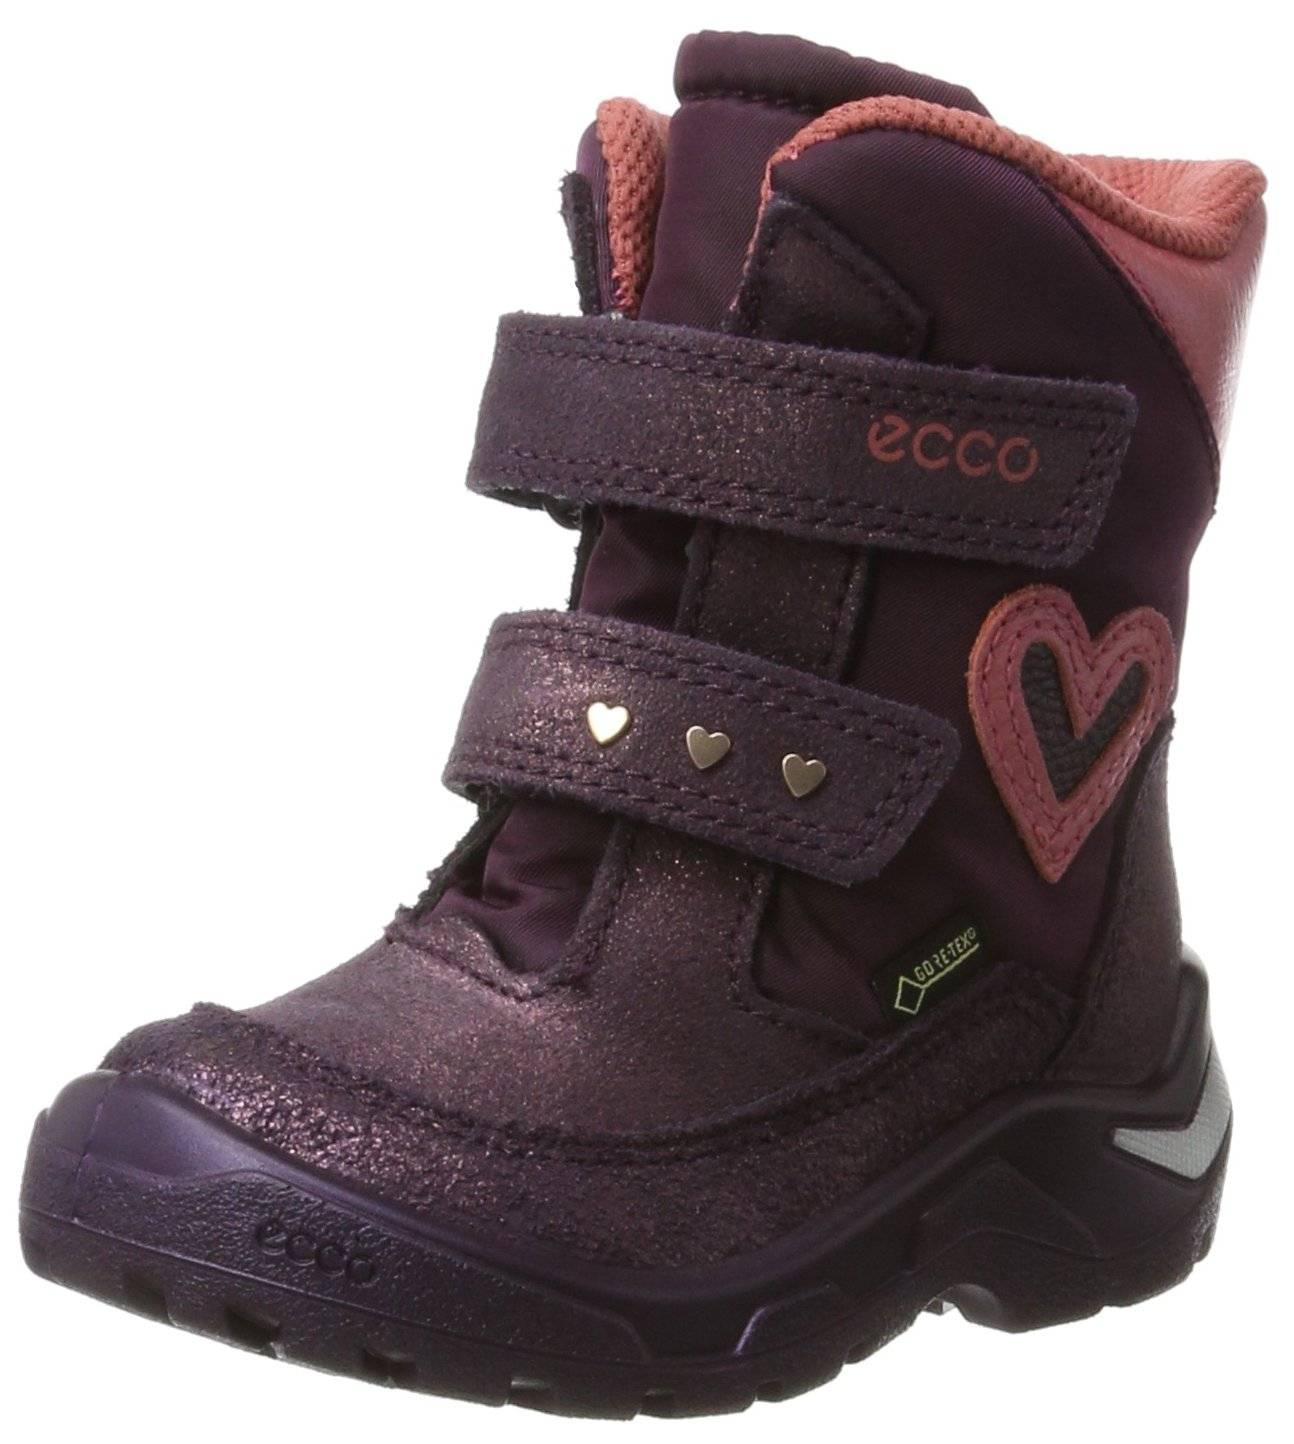 ECCO Baby Girls' Snowride Classic Boots 751291